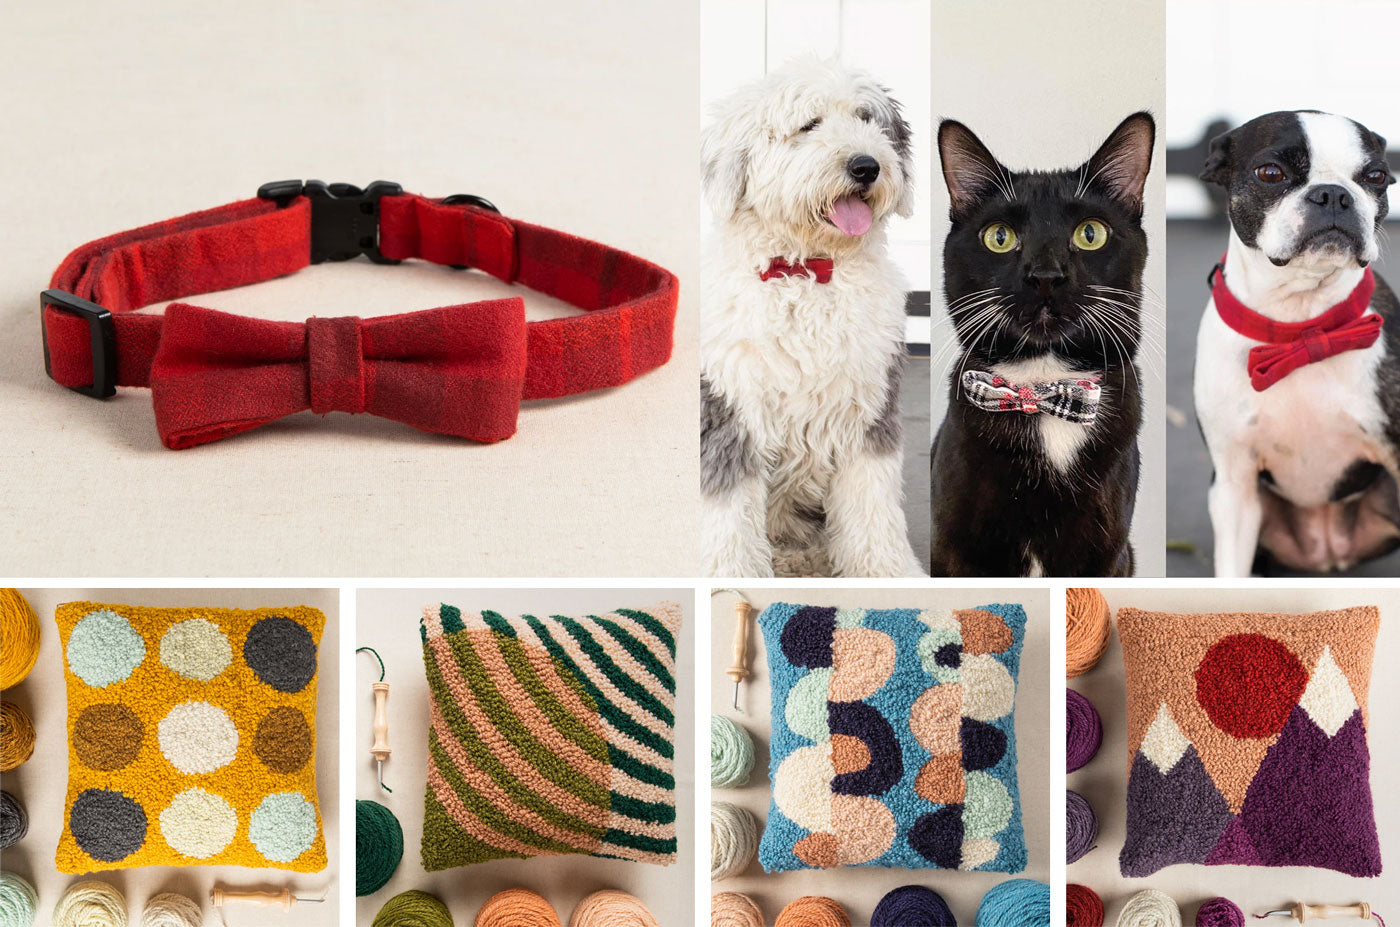 Images of a pet collar and punch needle kits